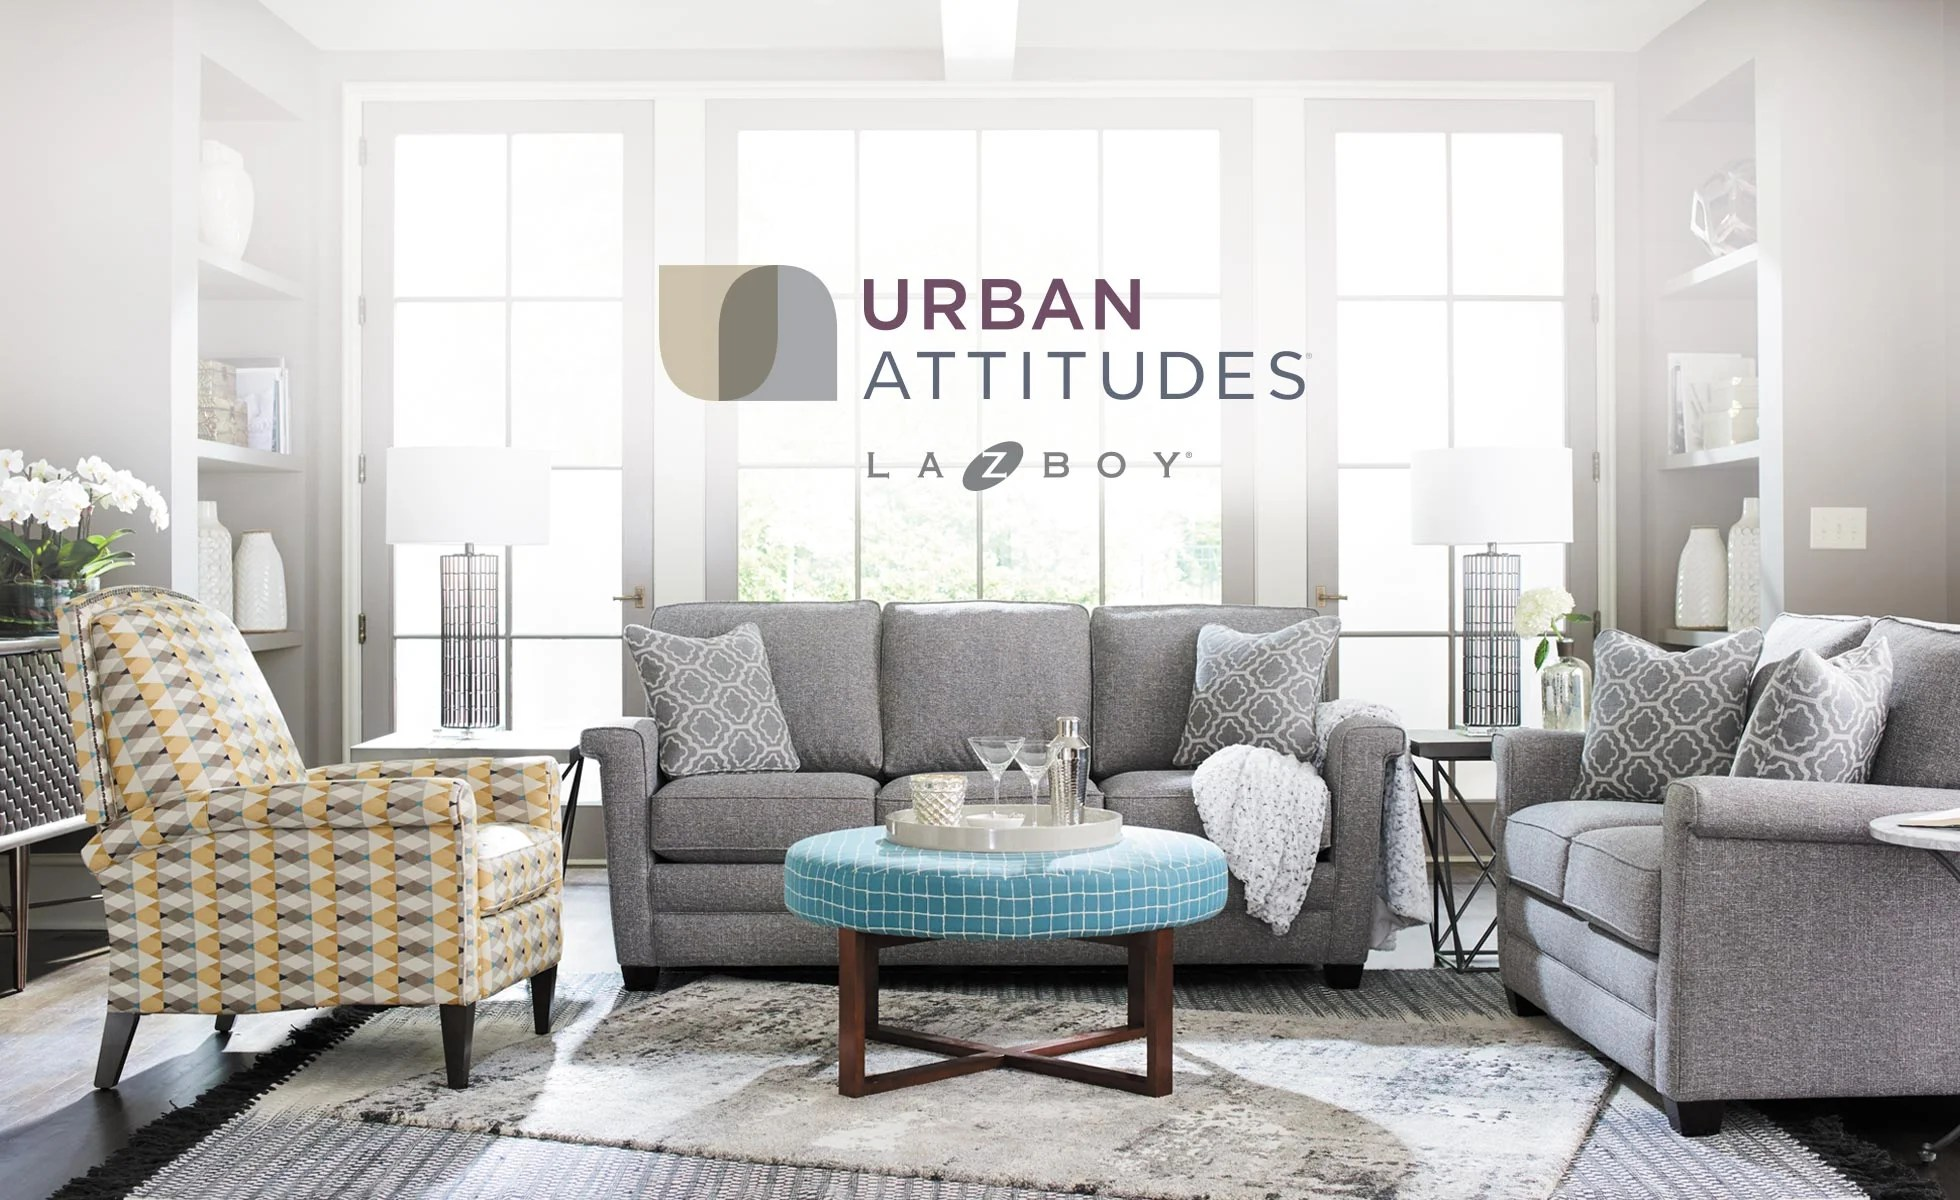 Accent Meuble Financement Urban Attitudes Room Design Made Simple La Z Boy